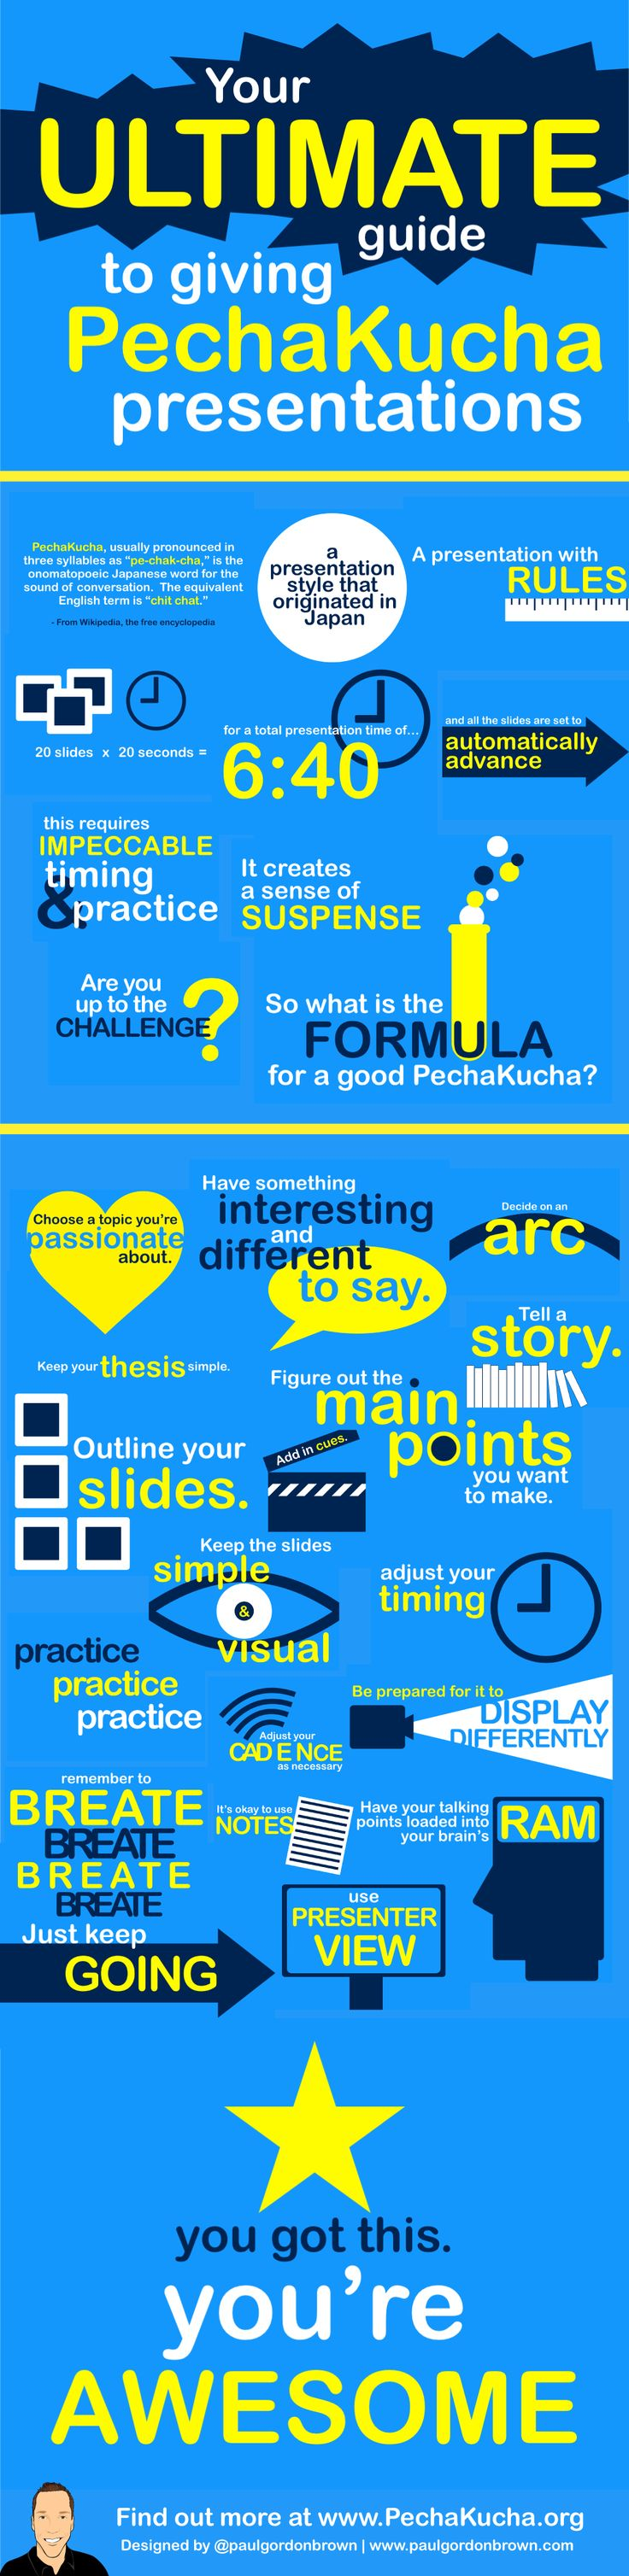 17 best images about pecha kucha presentations this has become a popular part of your ultimate guide to giving pechakucha presentations via paulgordonbrown